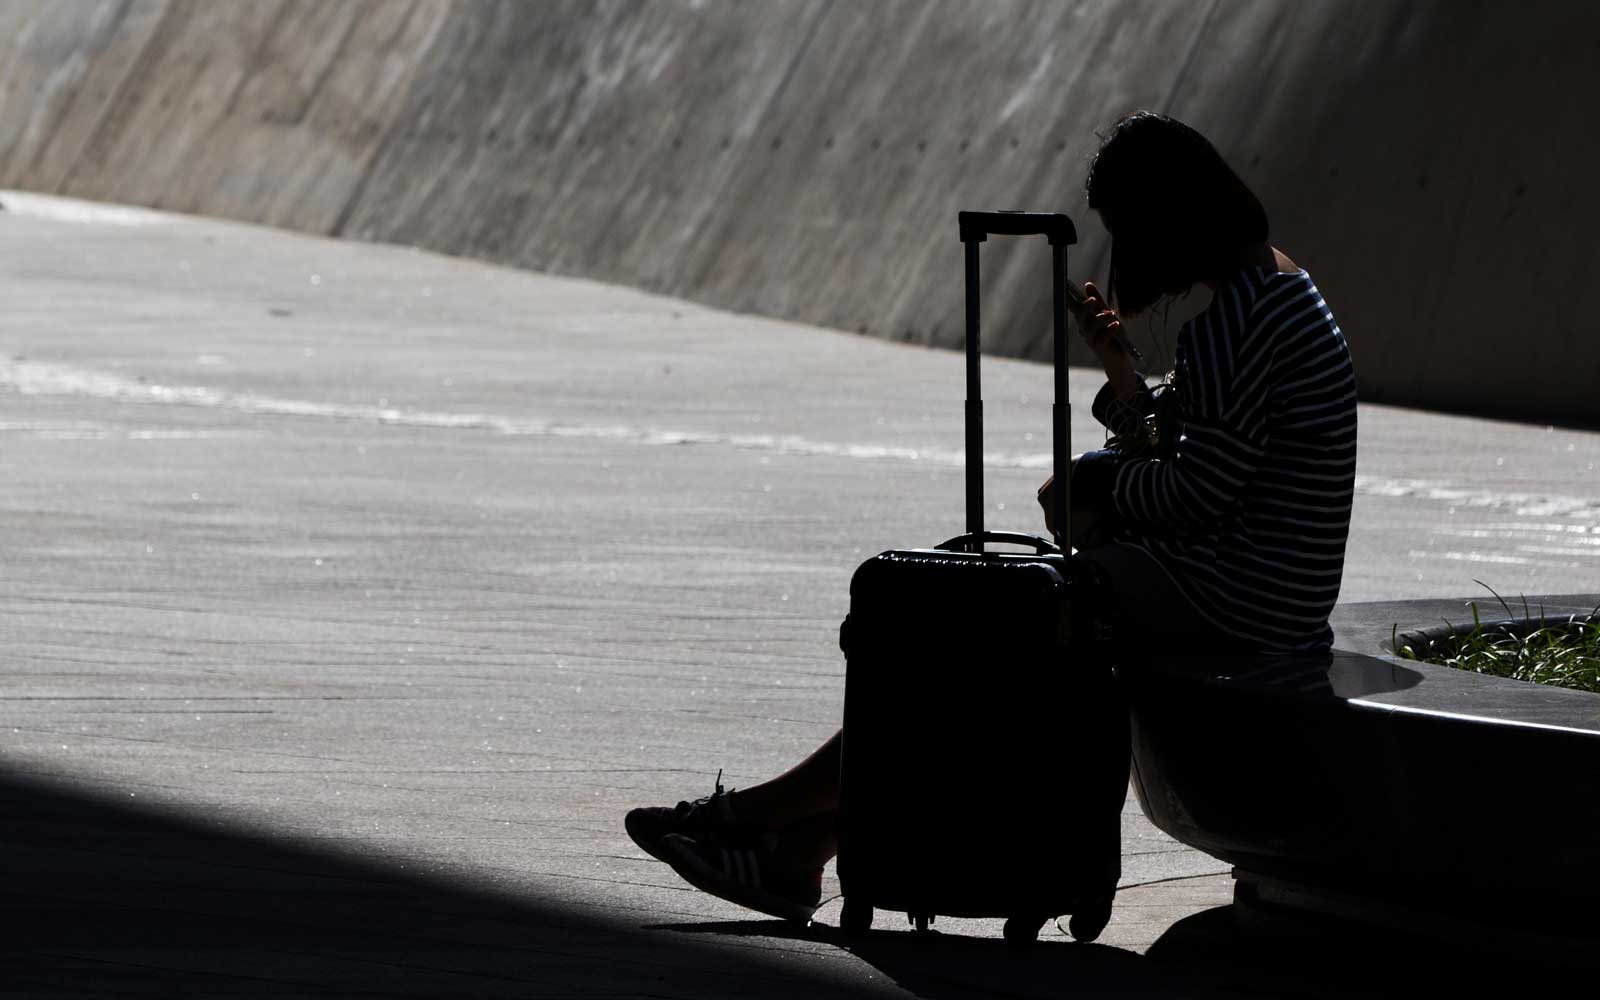 A woman sitting near luggage uses her smartphone